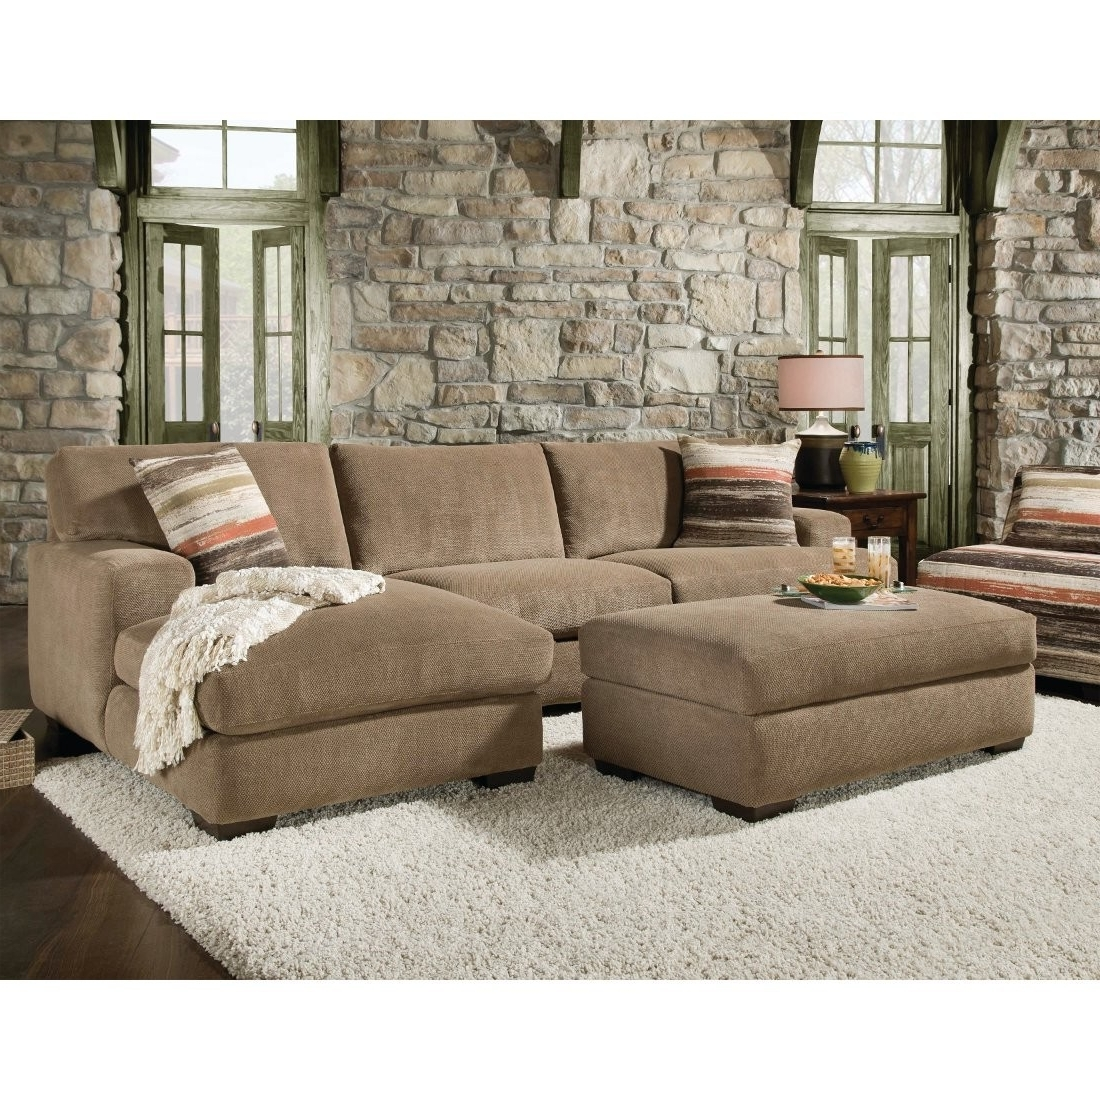 Sectionals With Ottoman And Chaise Regarding Latest Beautiful Sectional Sofa With Chaise And Ottoman Pictures (View 3 of 15)